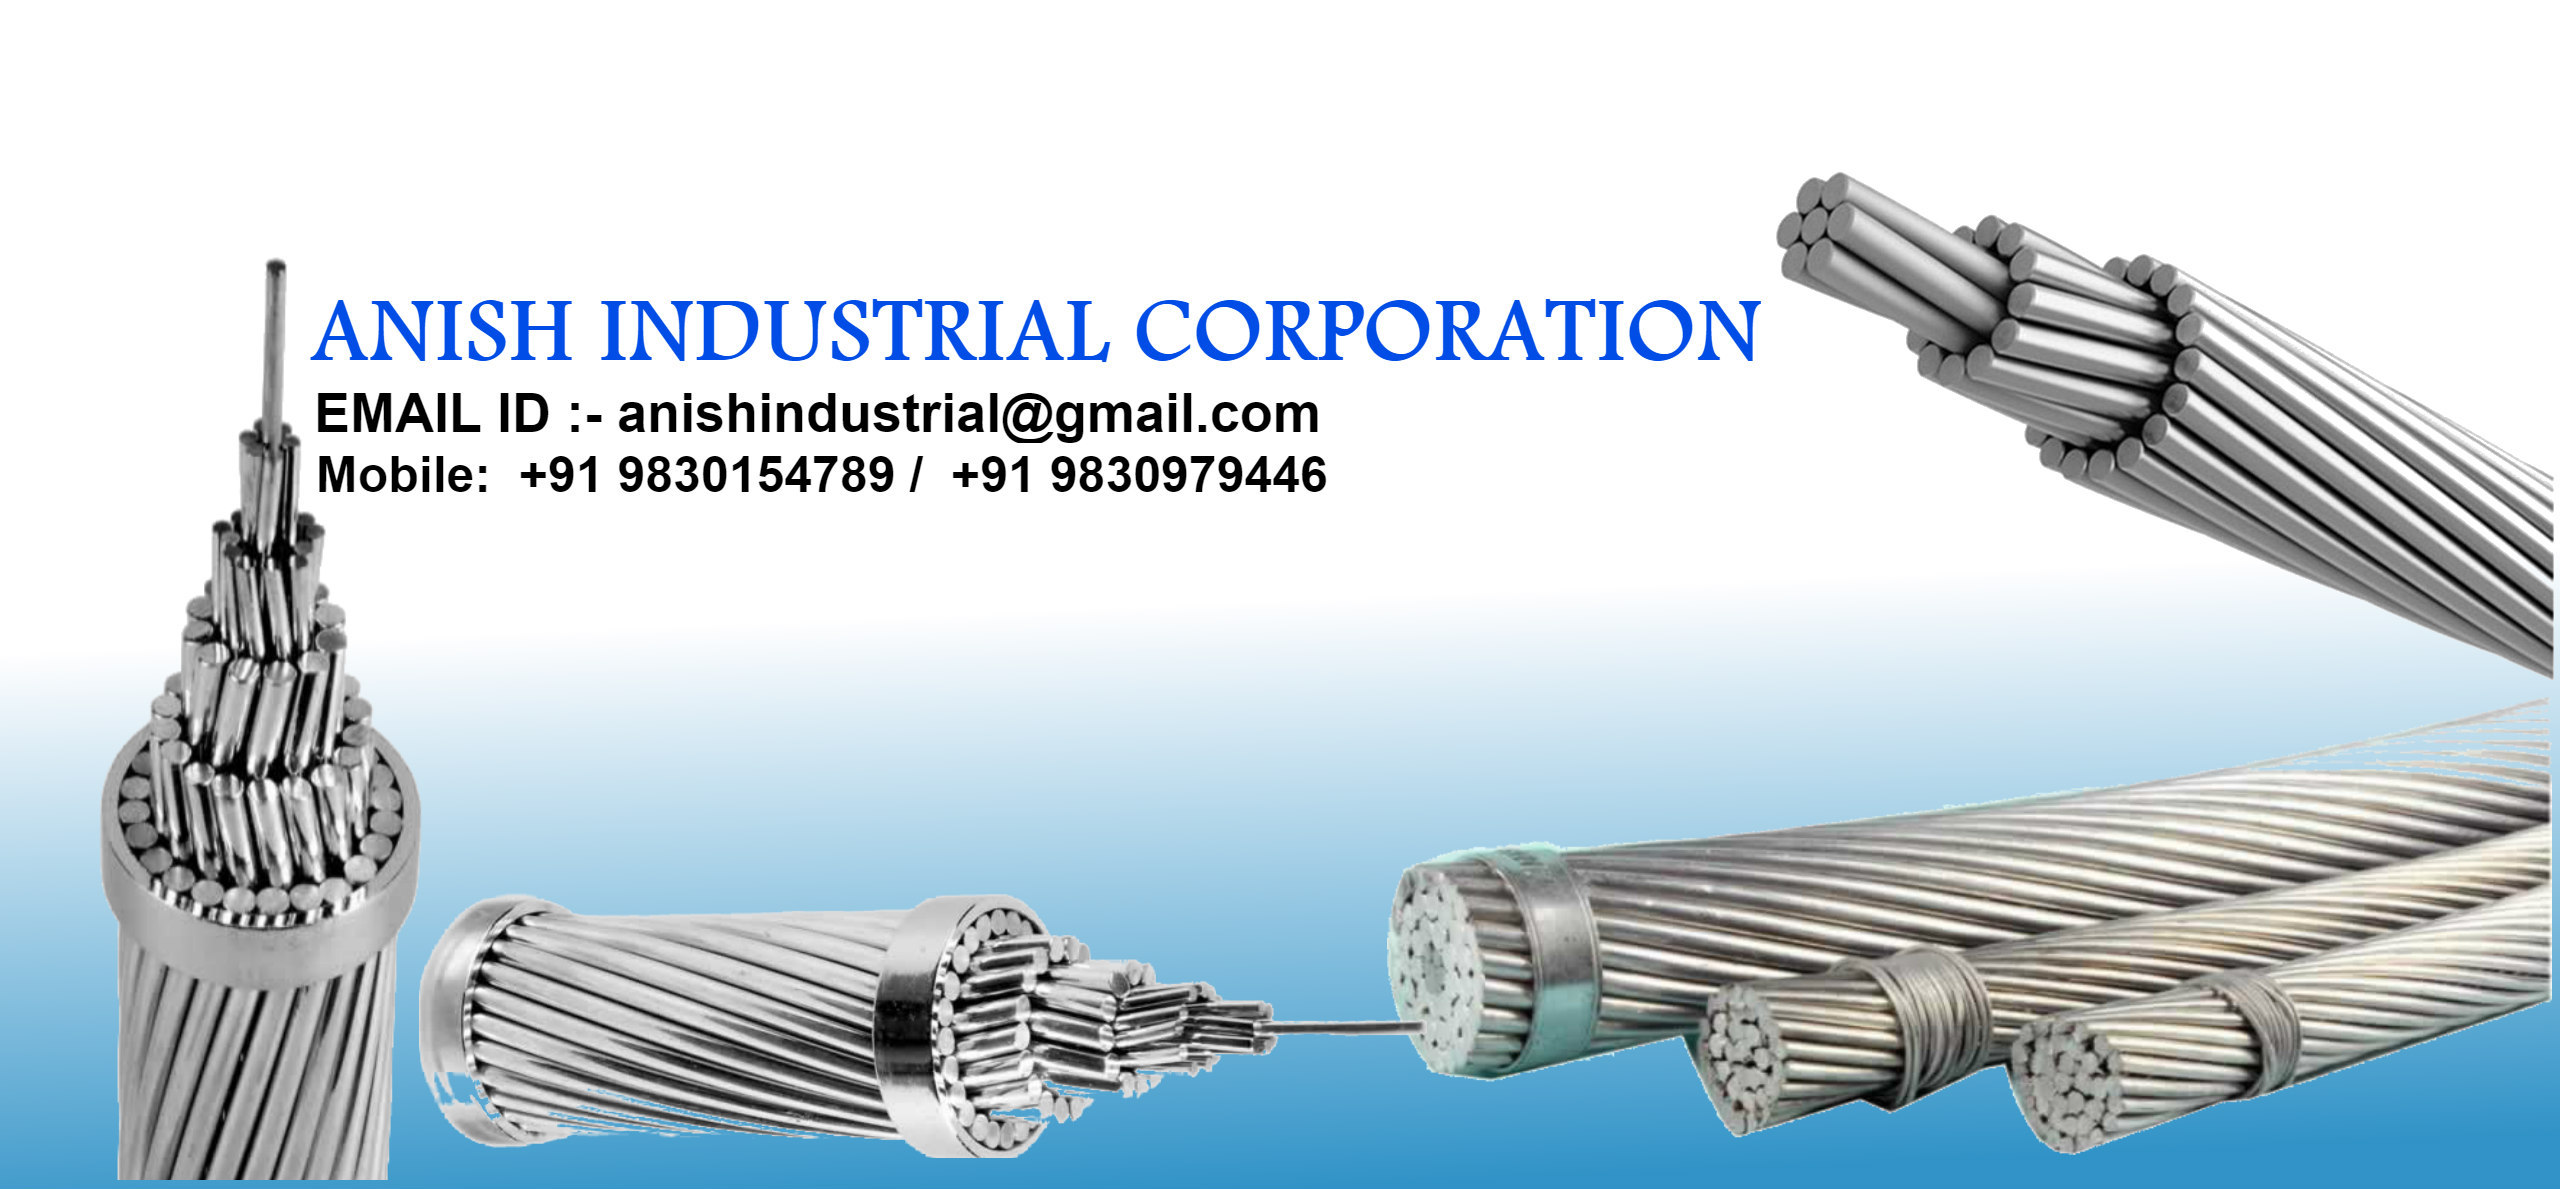 Anish Industrial Corporation